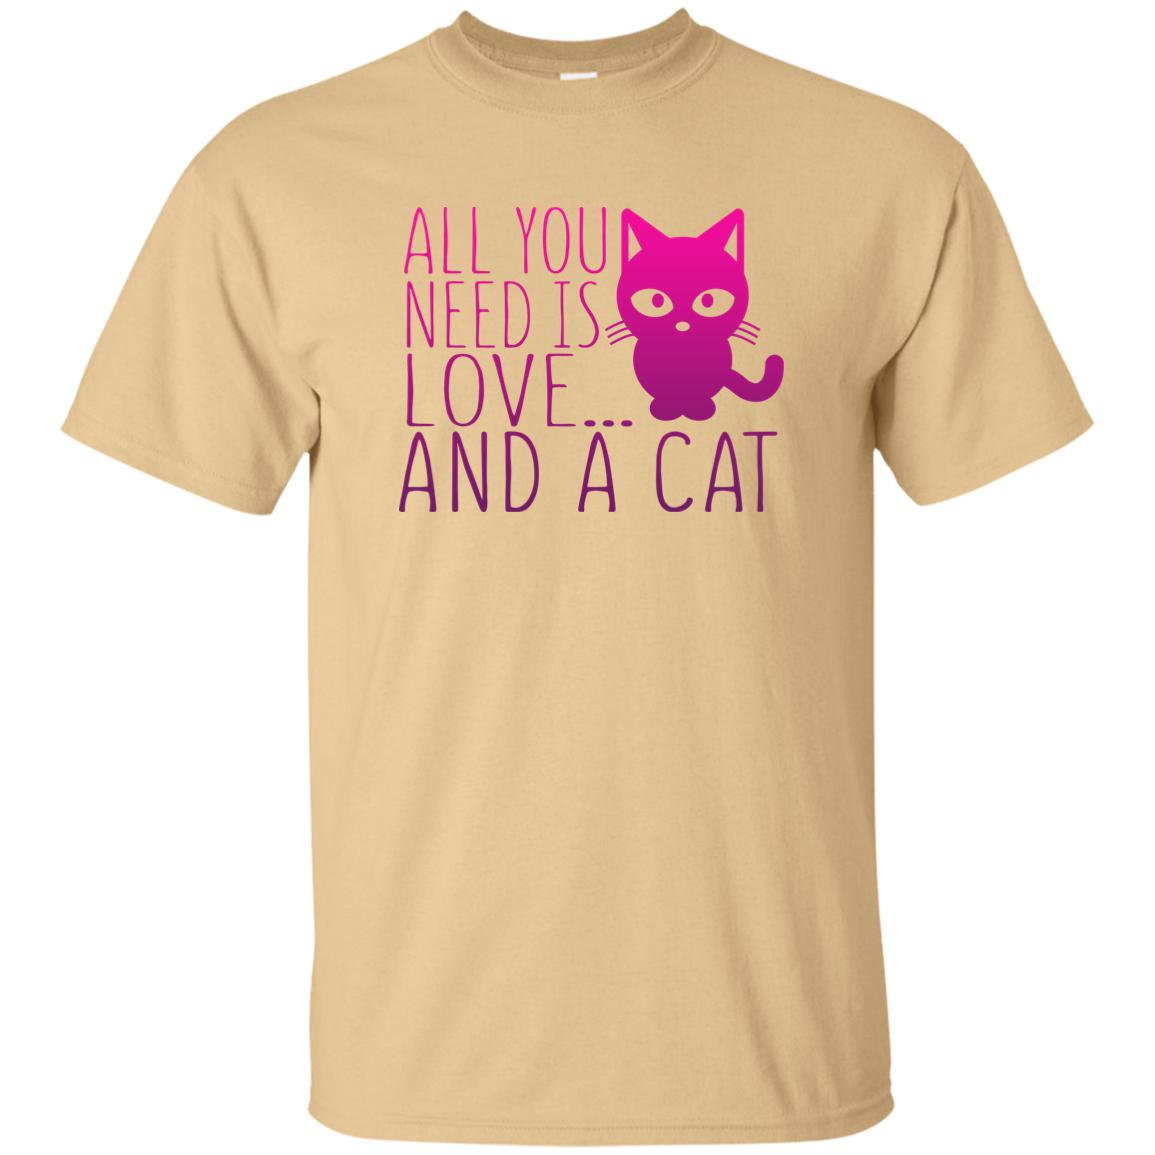 ALL YOU NEED IS LOVE AND A CAT 😻 T-SHIRT